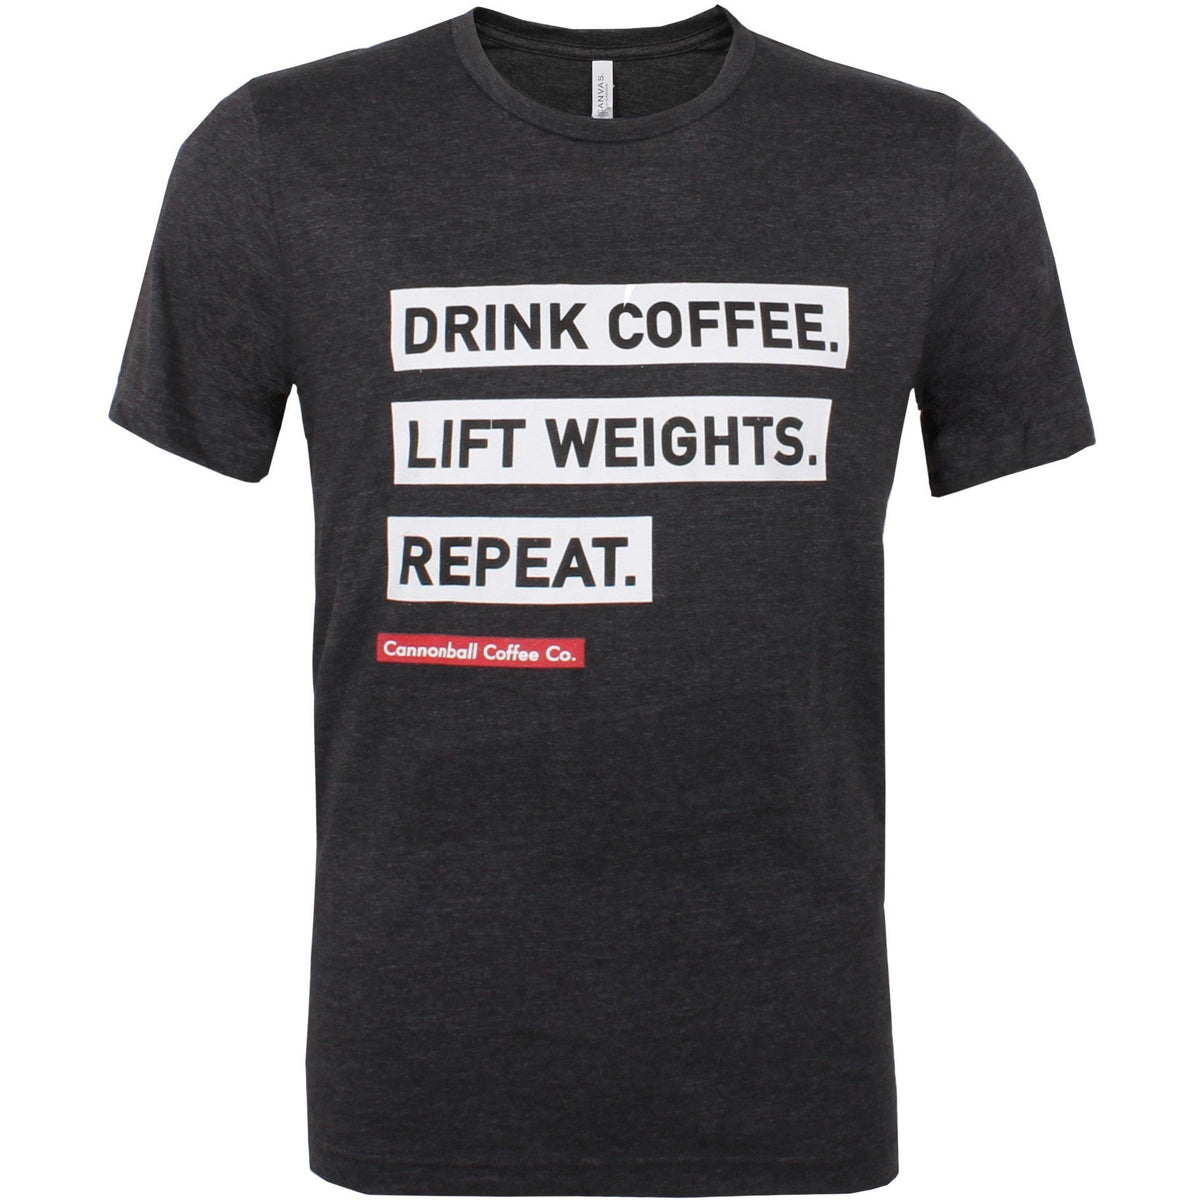 Drink Coffee, Lift Weights, Repeat t-shirt by Cannonball Coffee. Athletic fit